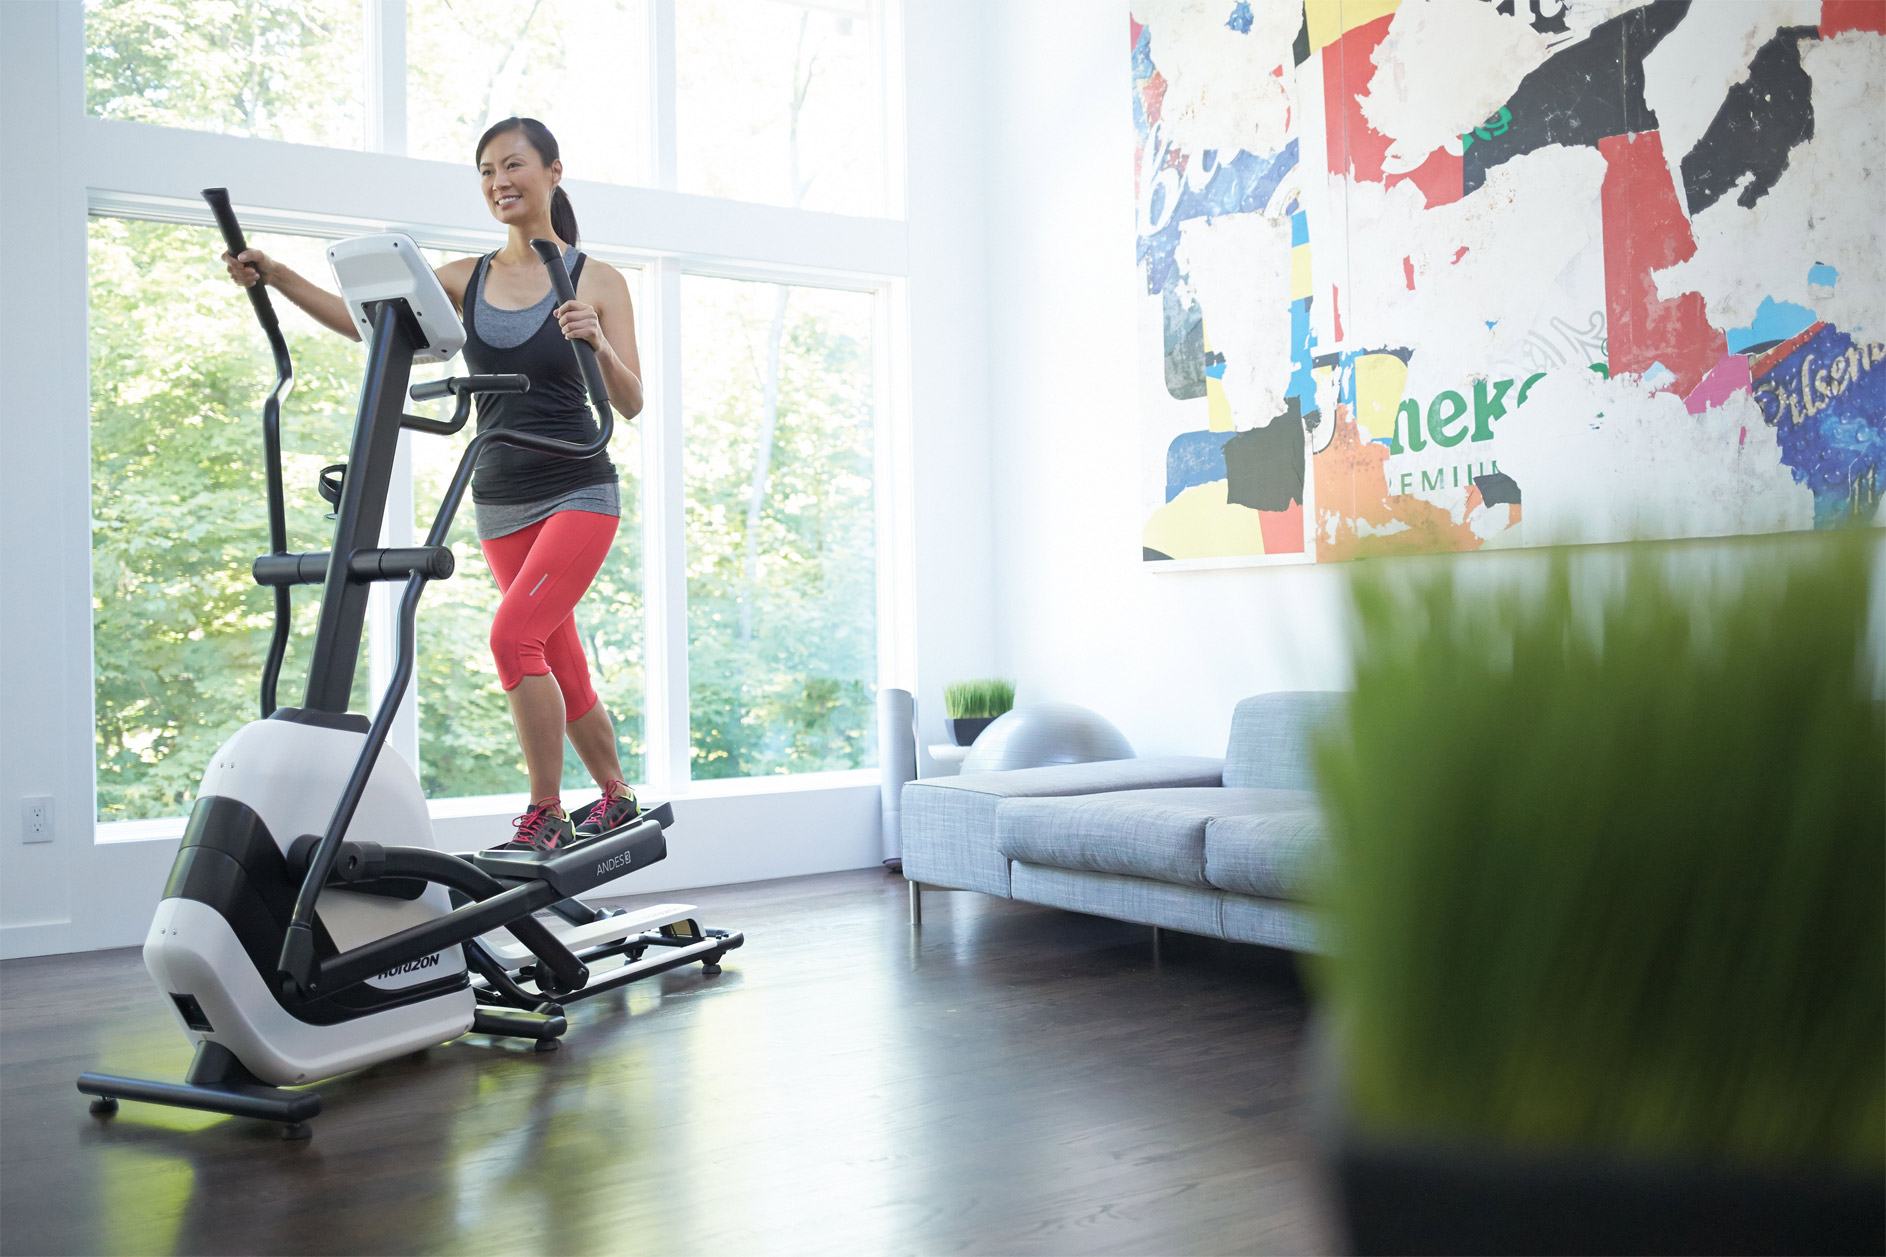 Some Factors to Keep in Mind When Choosing an Elliptical